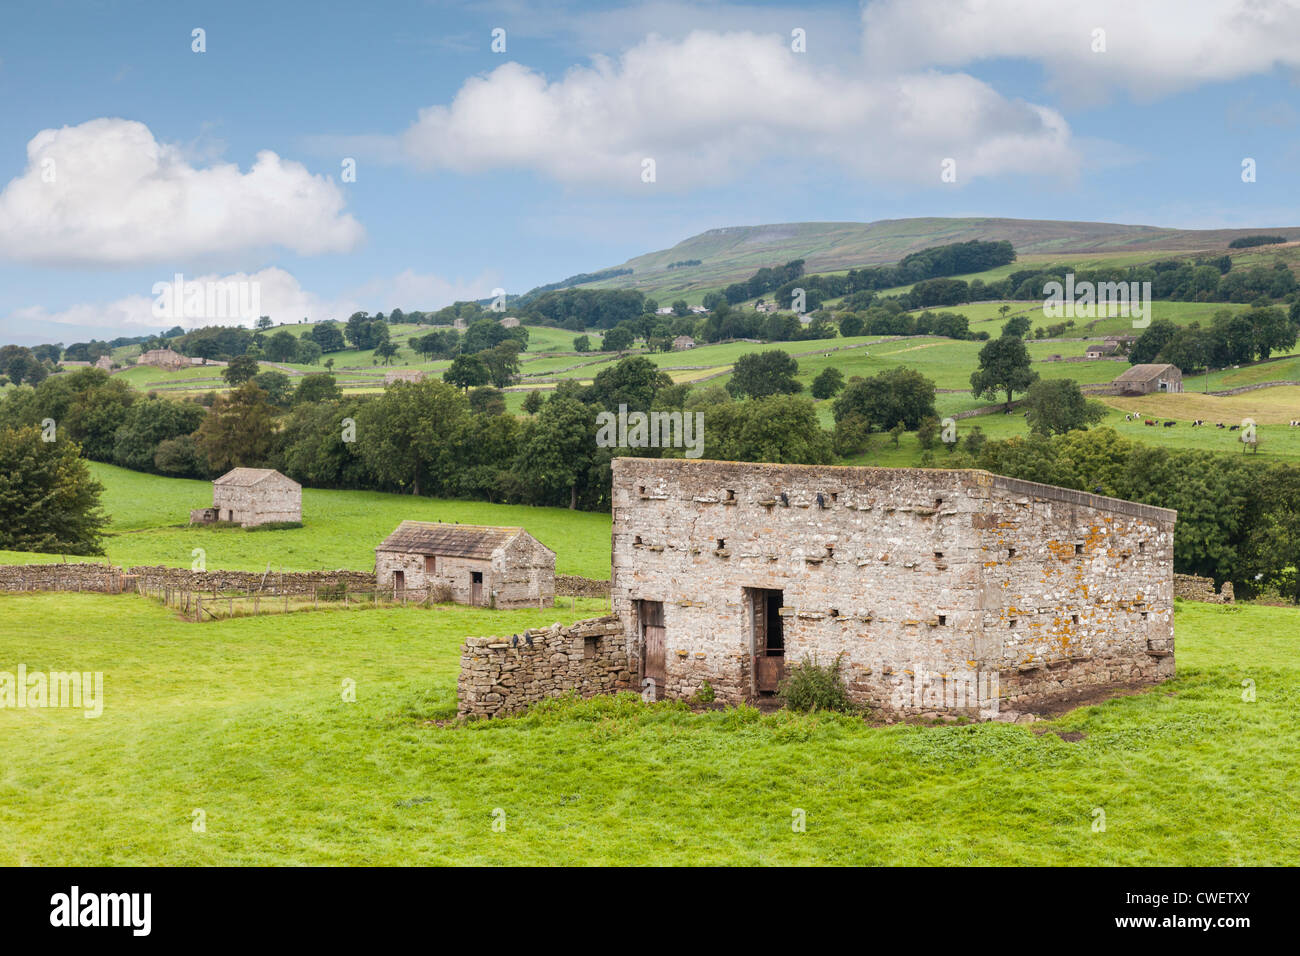 A typical stone barn in Wensleydale, Yorkshire Dales, England. - Stock Image